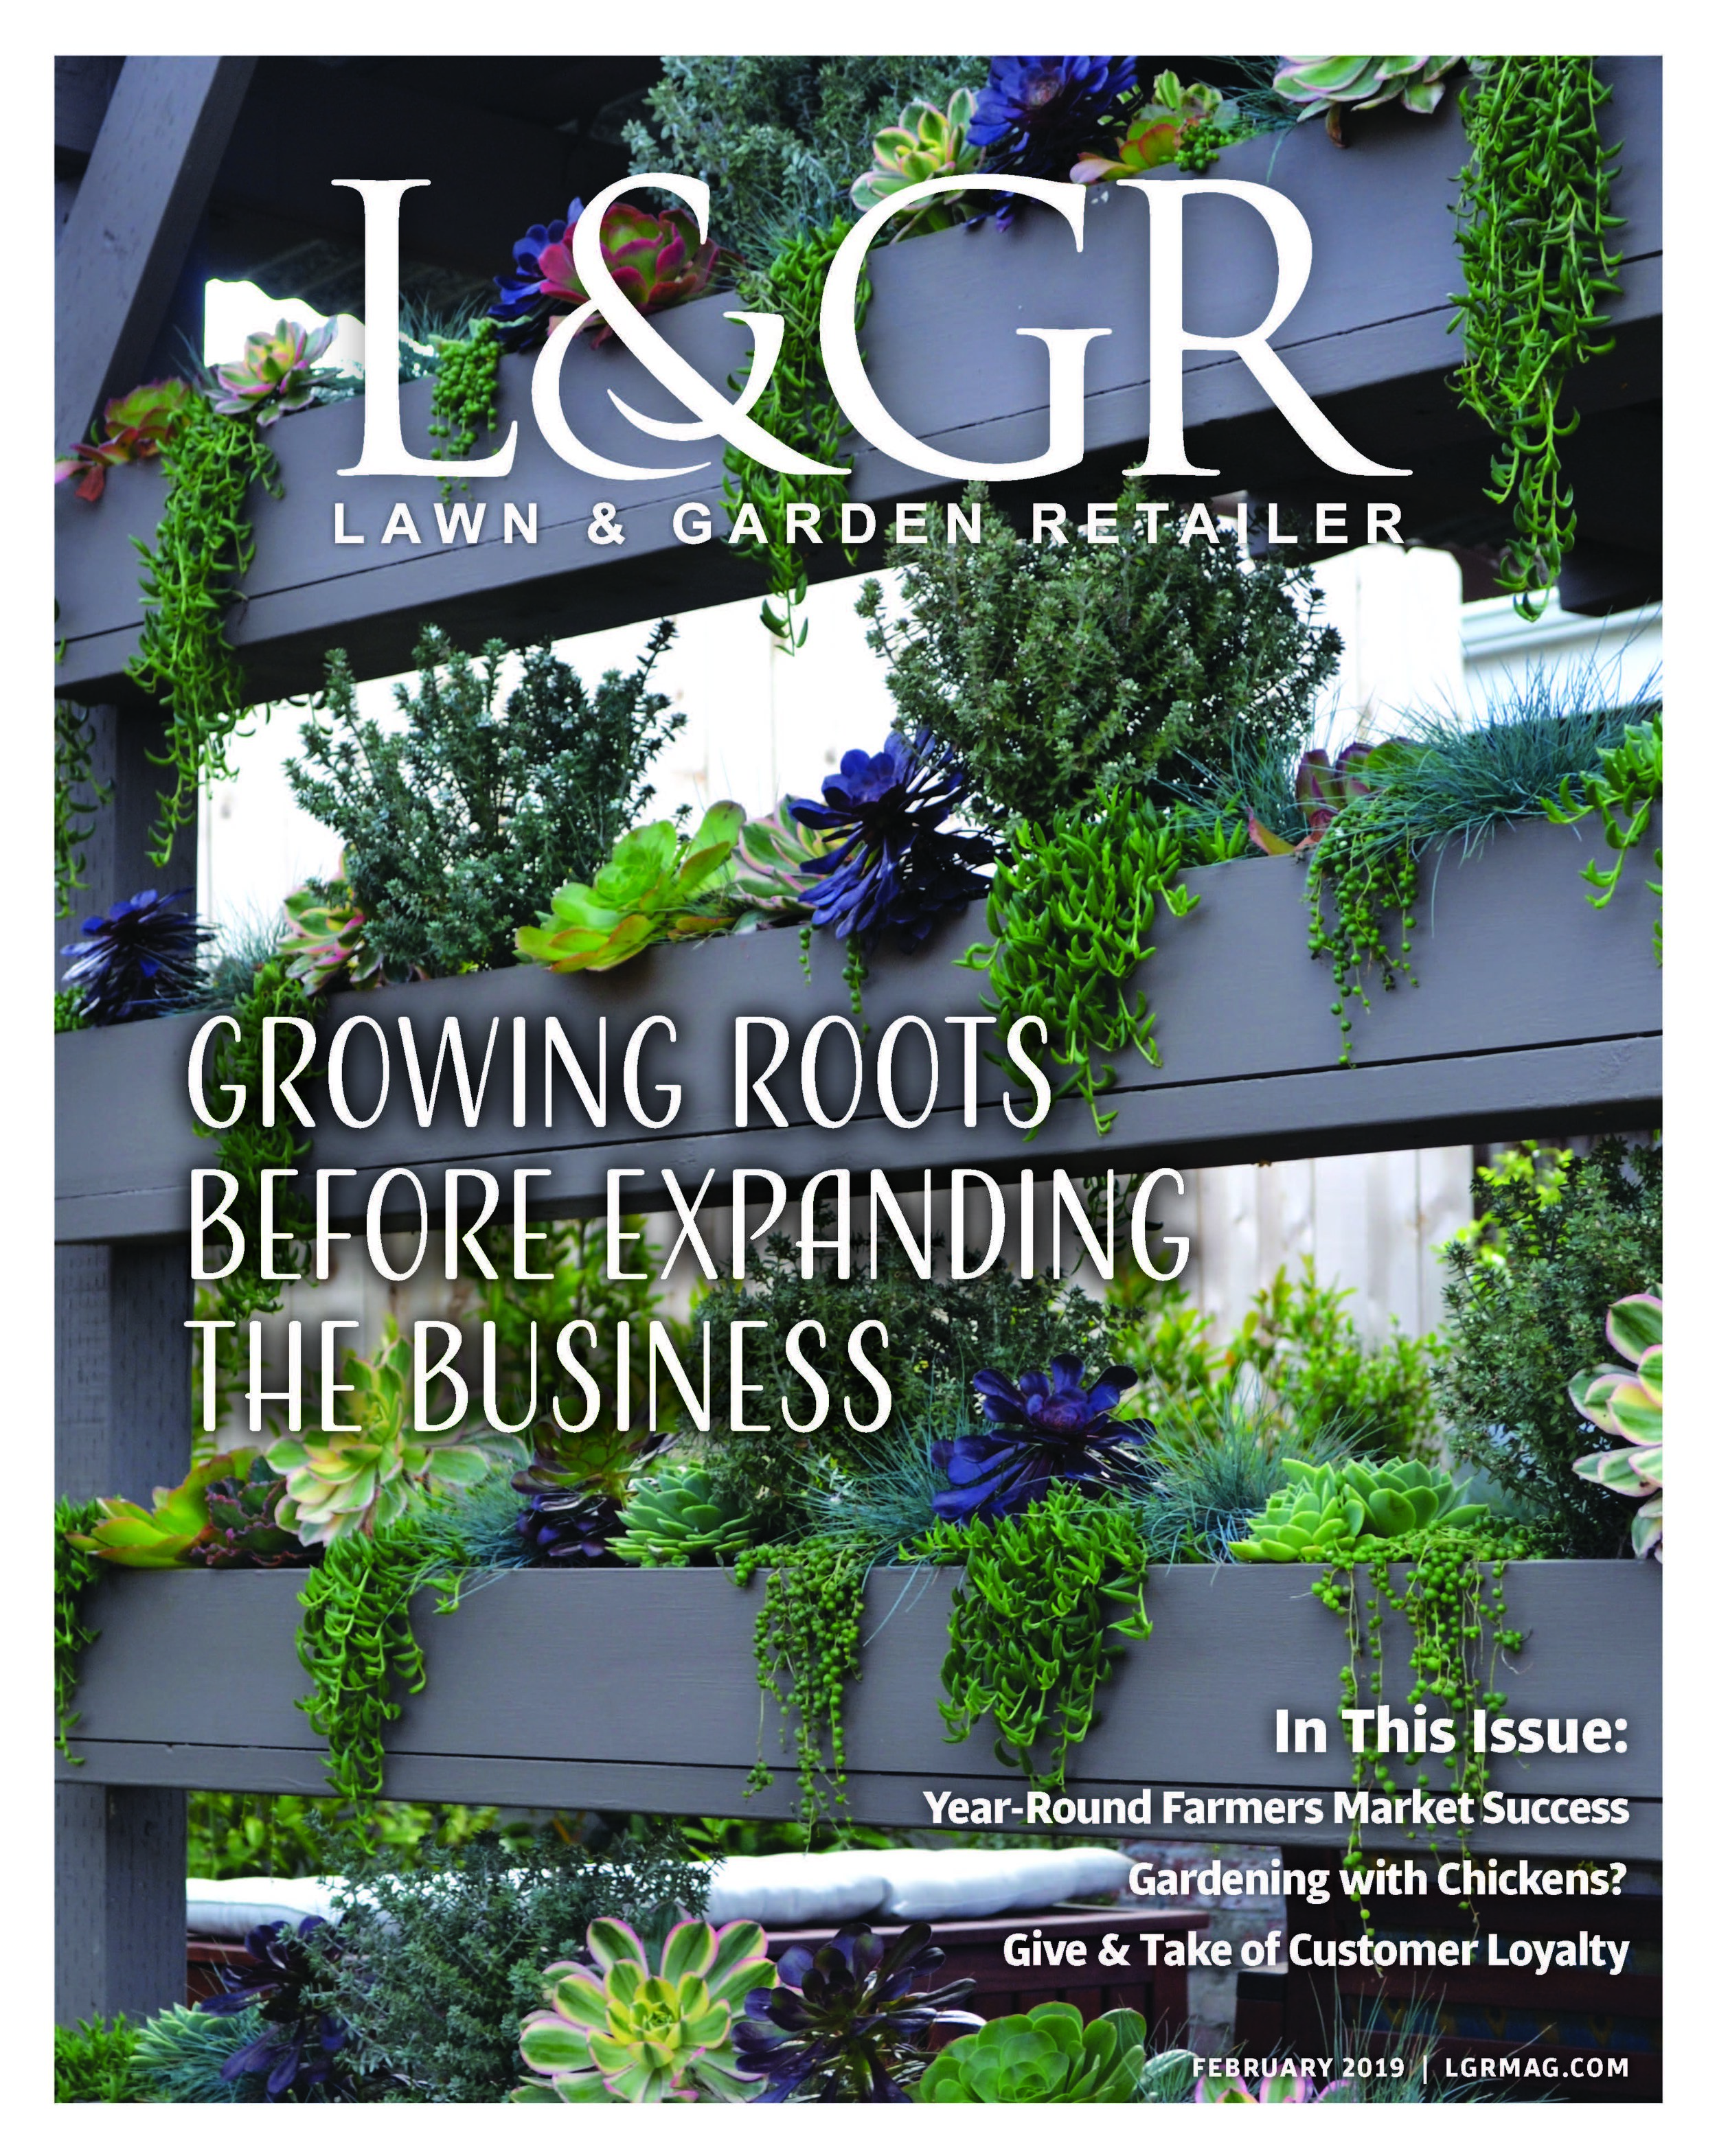 Lawn and Garden Retailer Magazine. Link to publication imagery